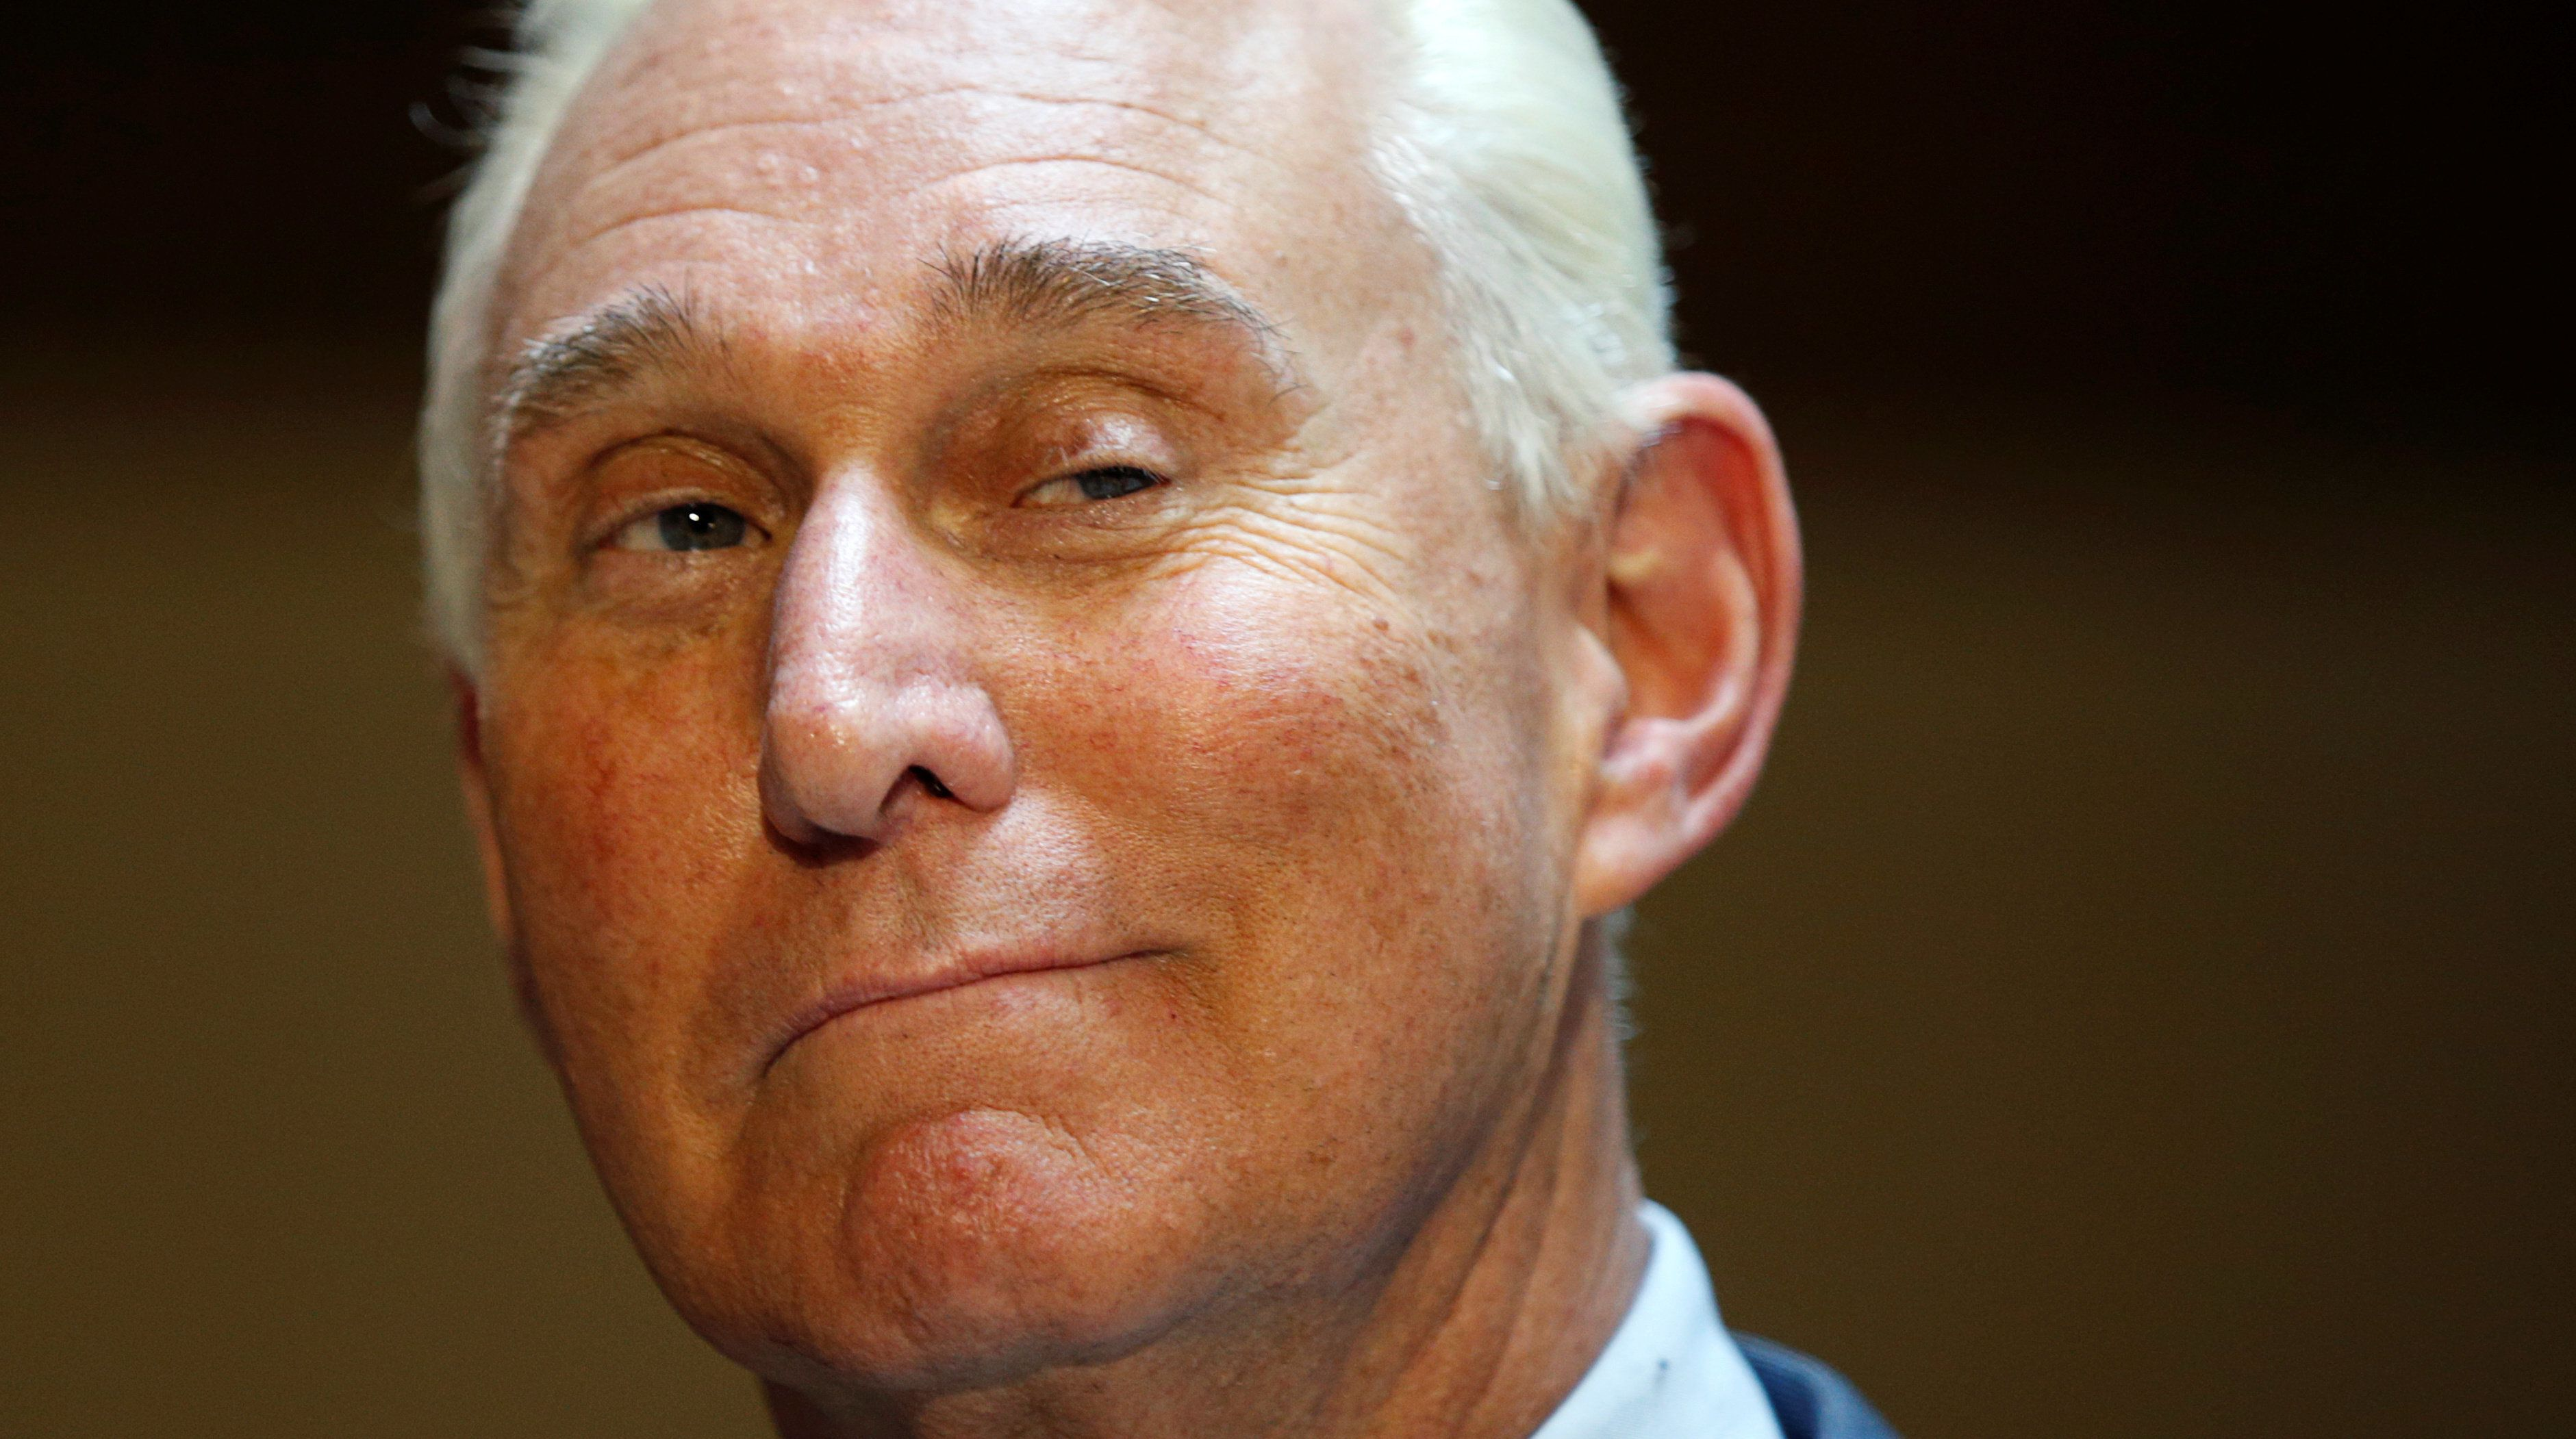 """Roger Stone, who has a long reputation as a GOP """"dirty trickster,"""" was arrested Friday morning on a seven-count indictment."""